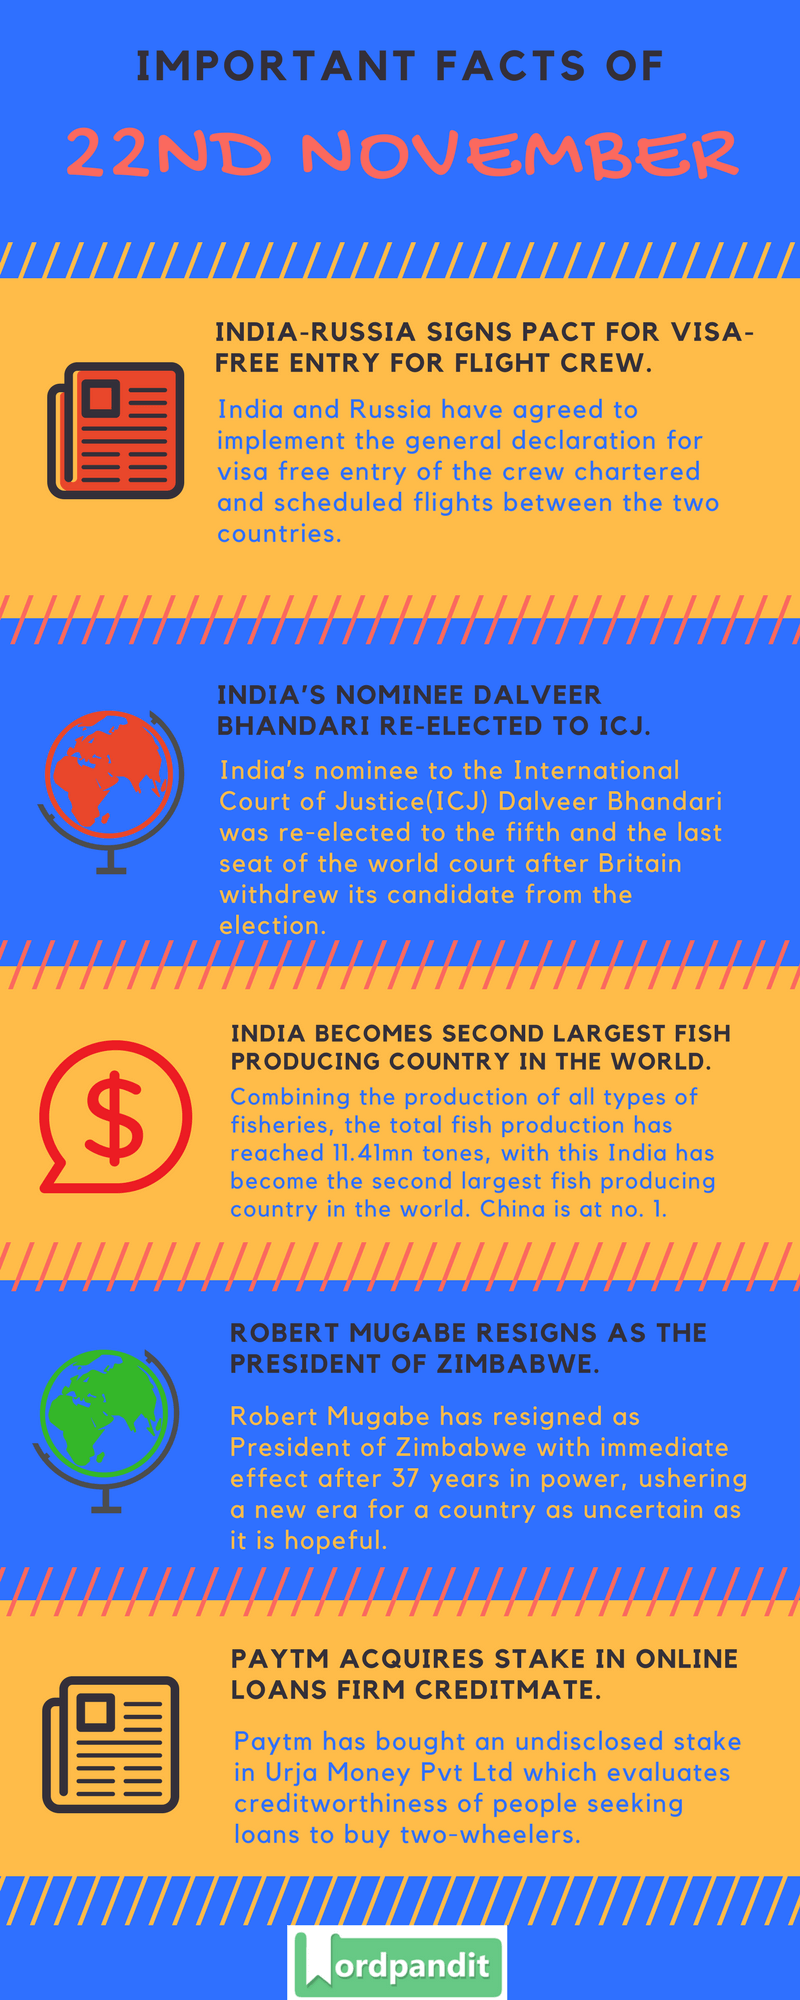 Daily-Current-Affairs-22-november-2017-Current-Affairs-Quiz-november-22-2017-Current-Affairs-Infographic